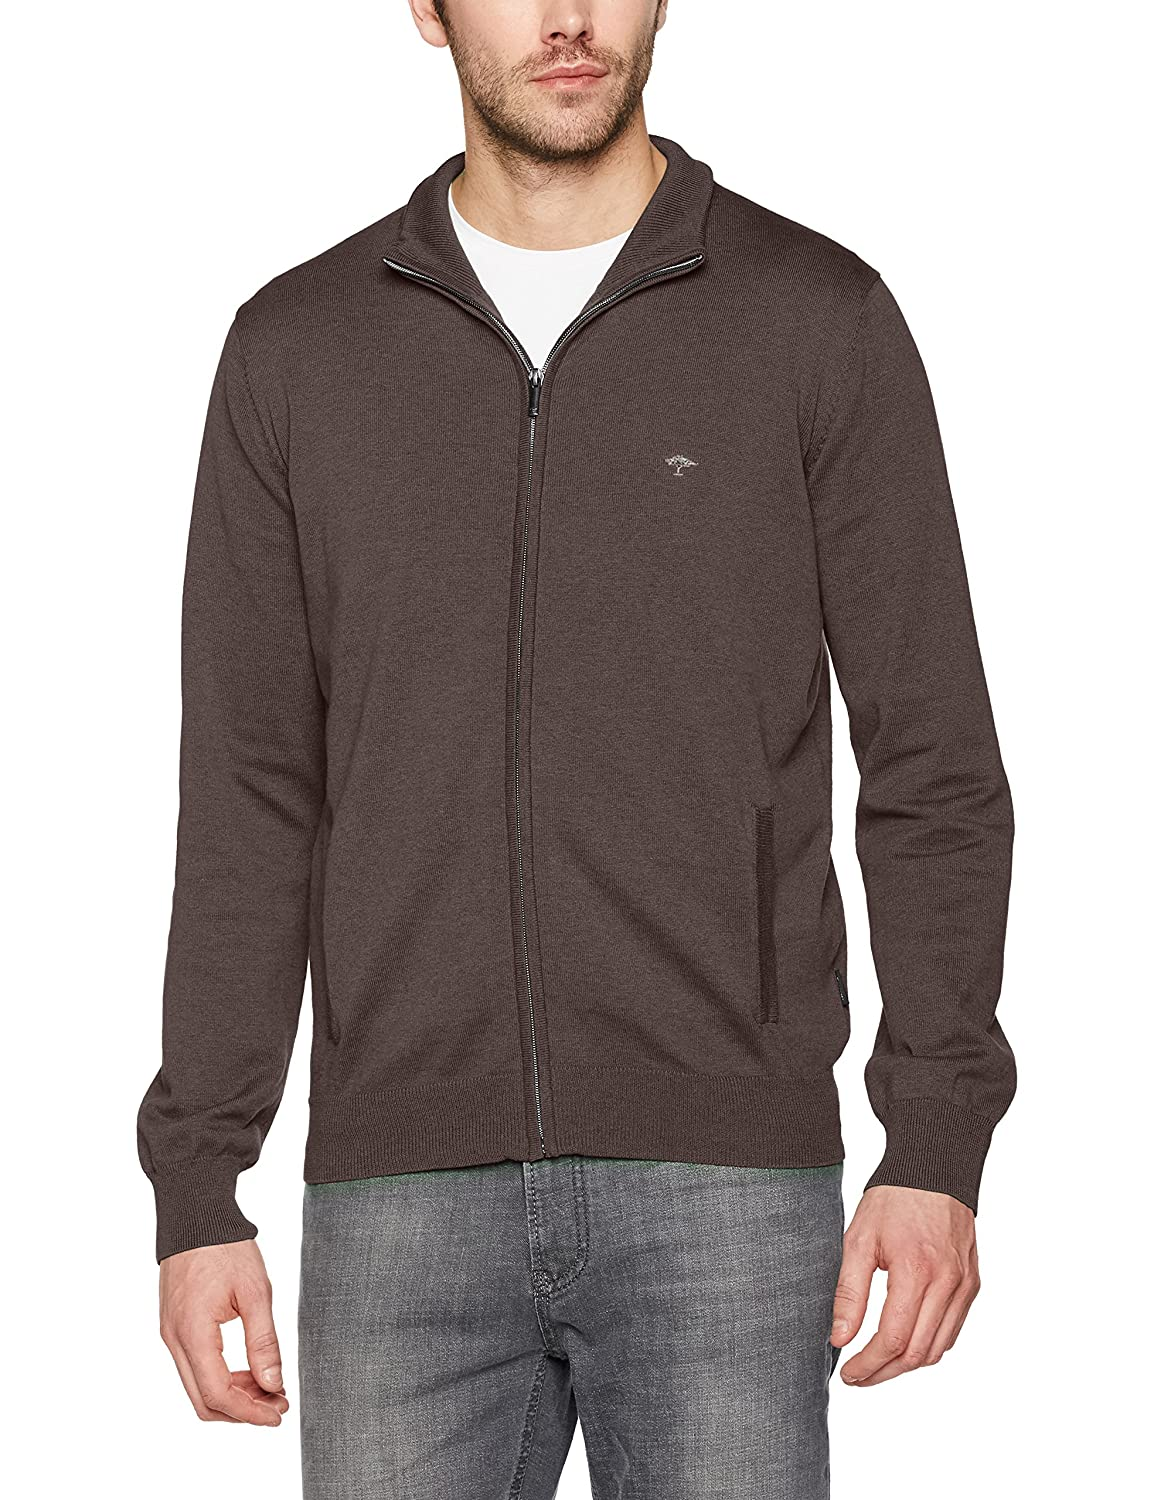 FYNCH-HATTON Herren Strickjacken Cardigan-Zip